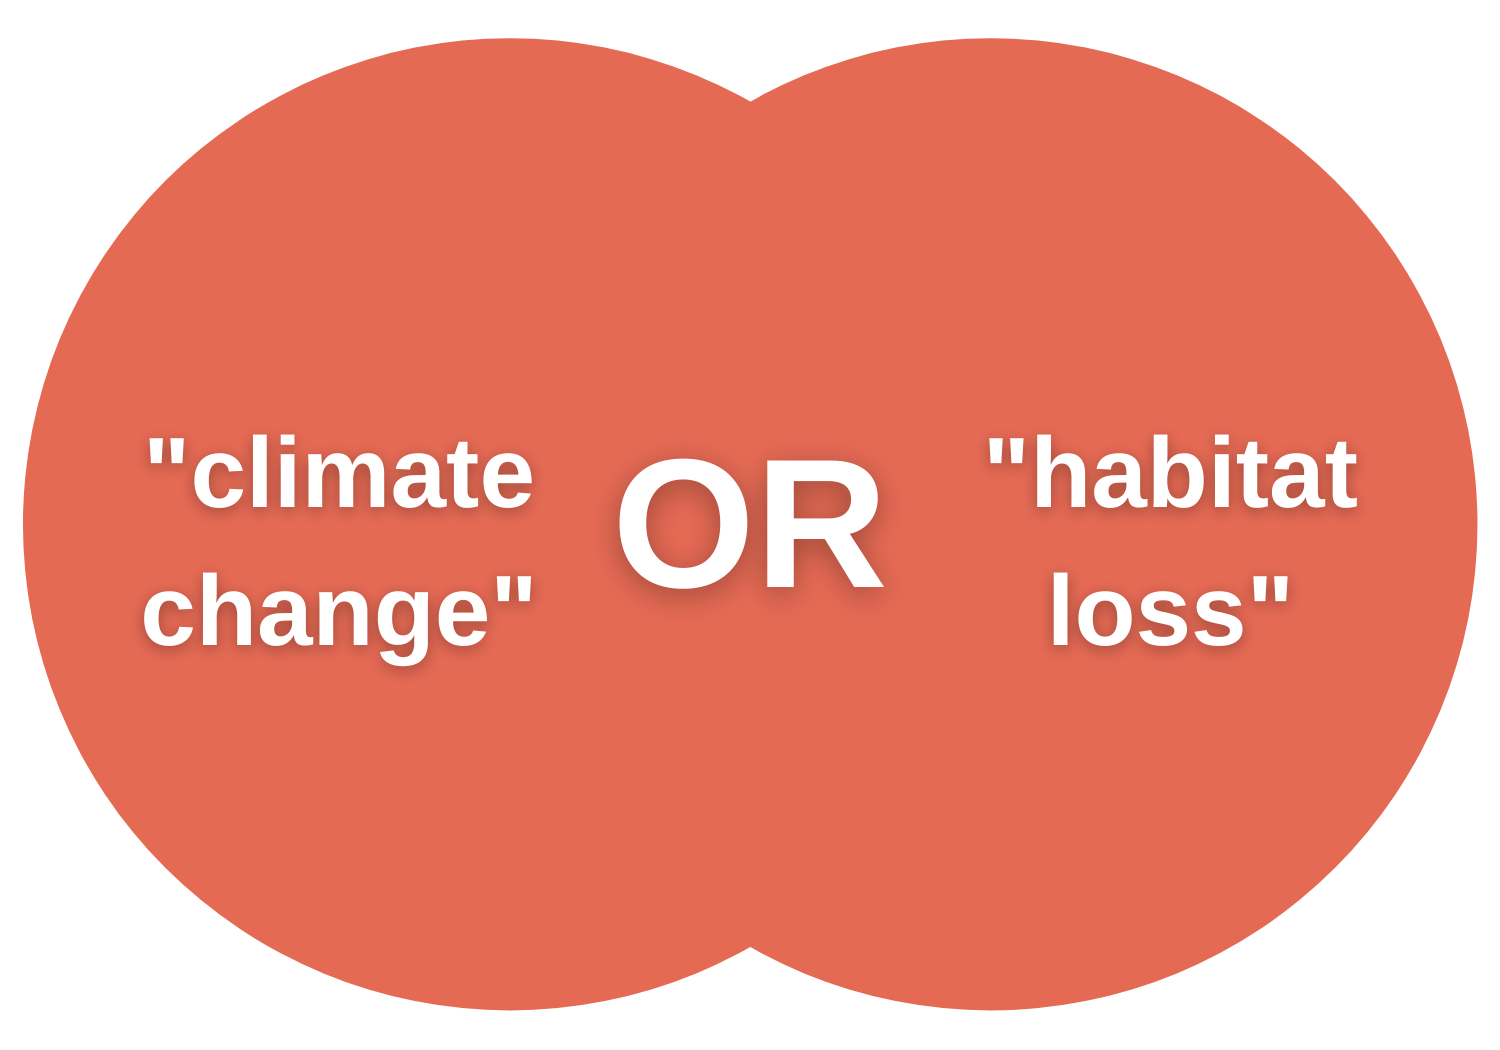 """Venn diagram with the phrase """"climate change"""" on in the left circle, the Boolean operator OR in the middle, and the phrase """"habitat loss"""" in the right circle"""